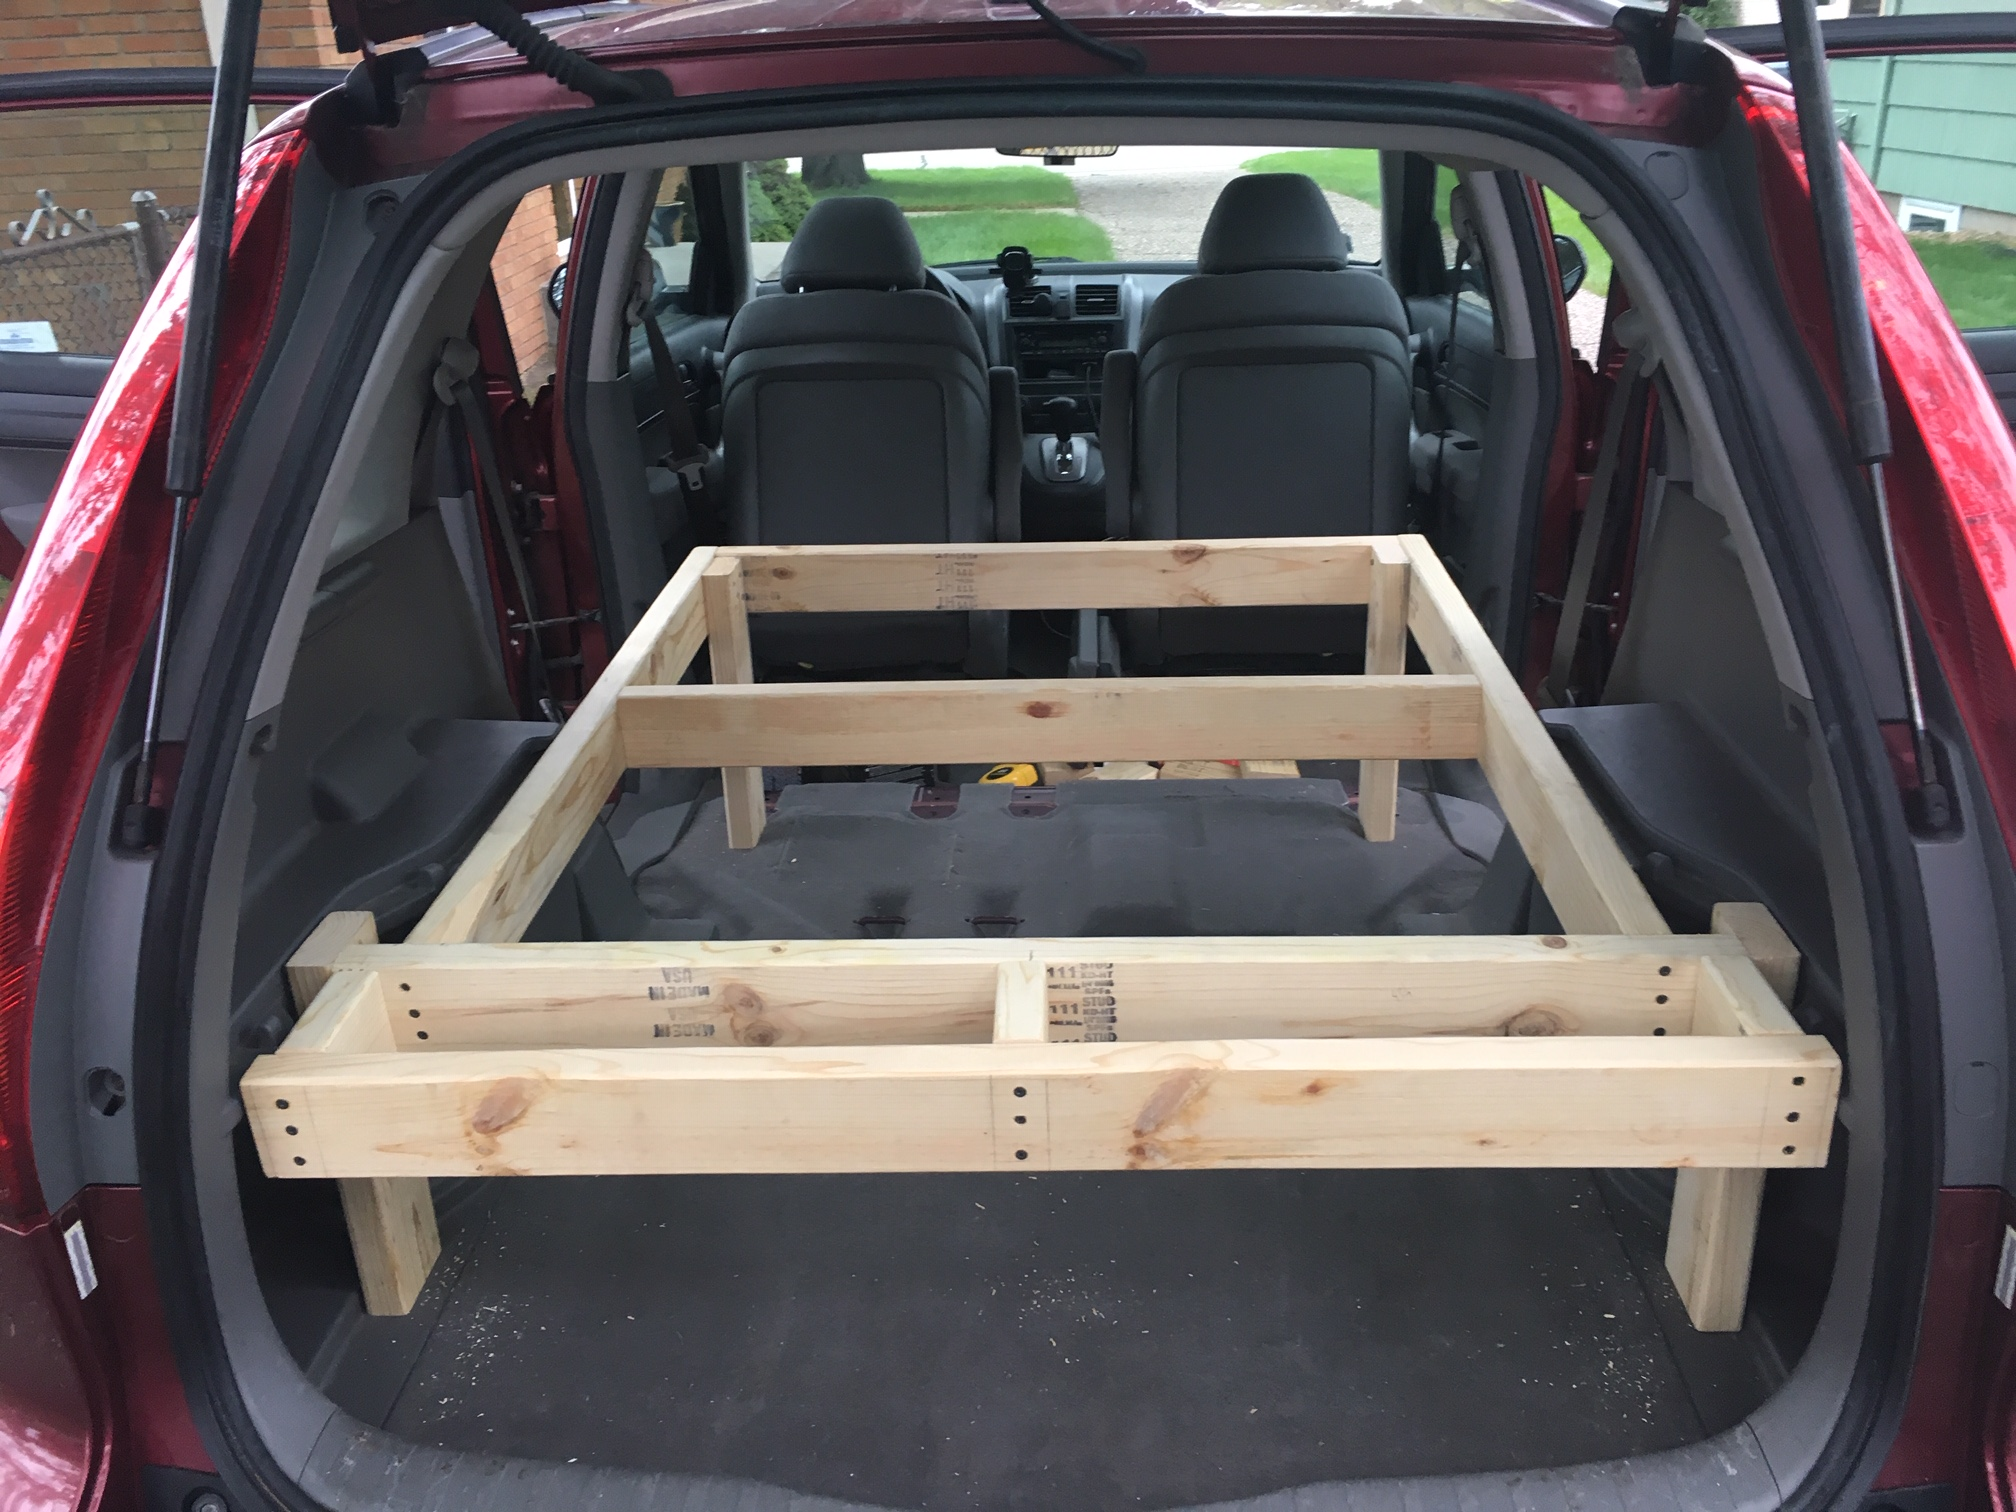 Maximizing the square footage for the sleeping platform by claiming all the available space behind the hatchback